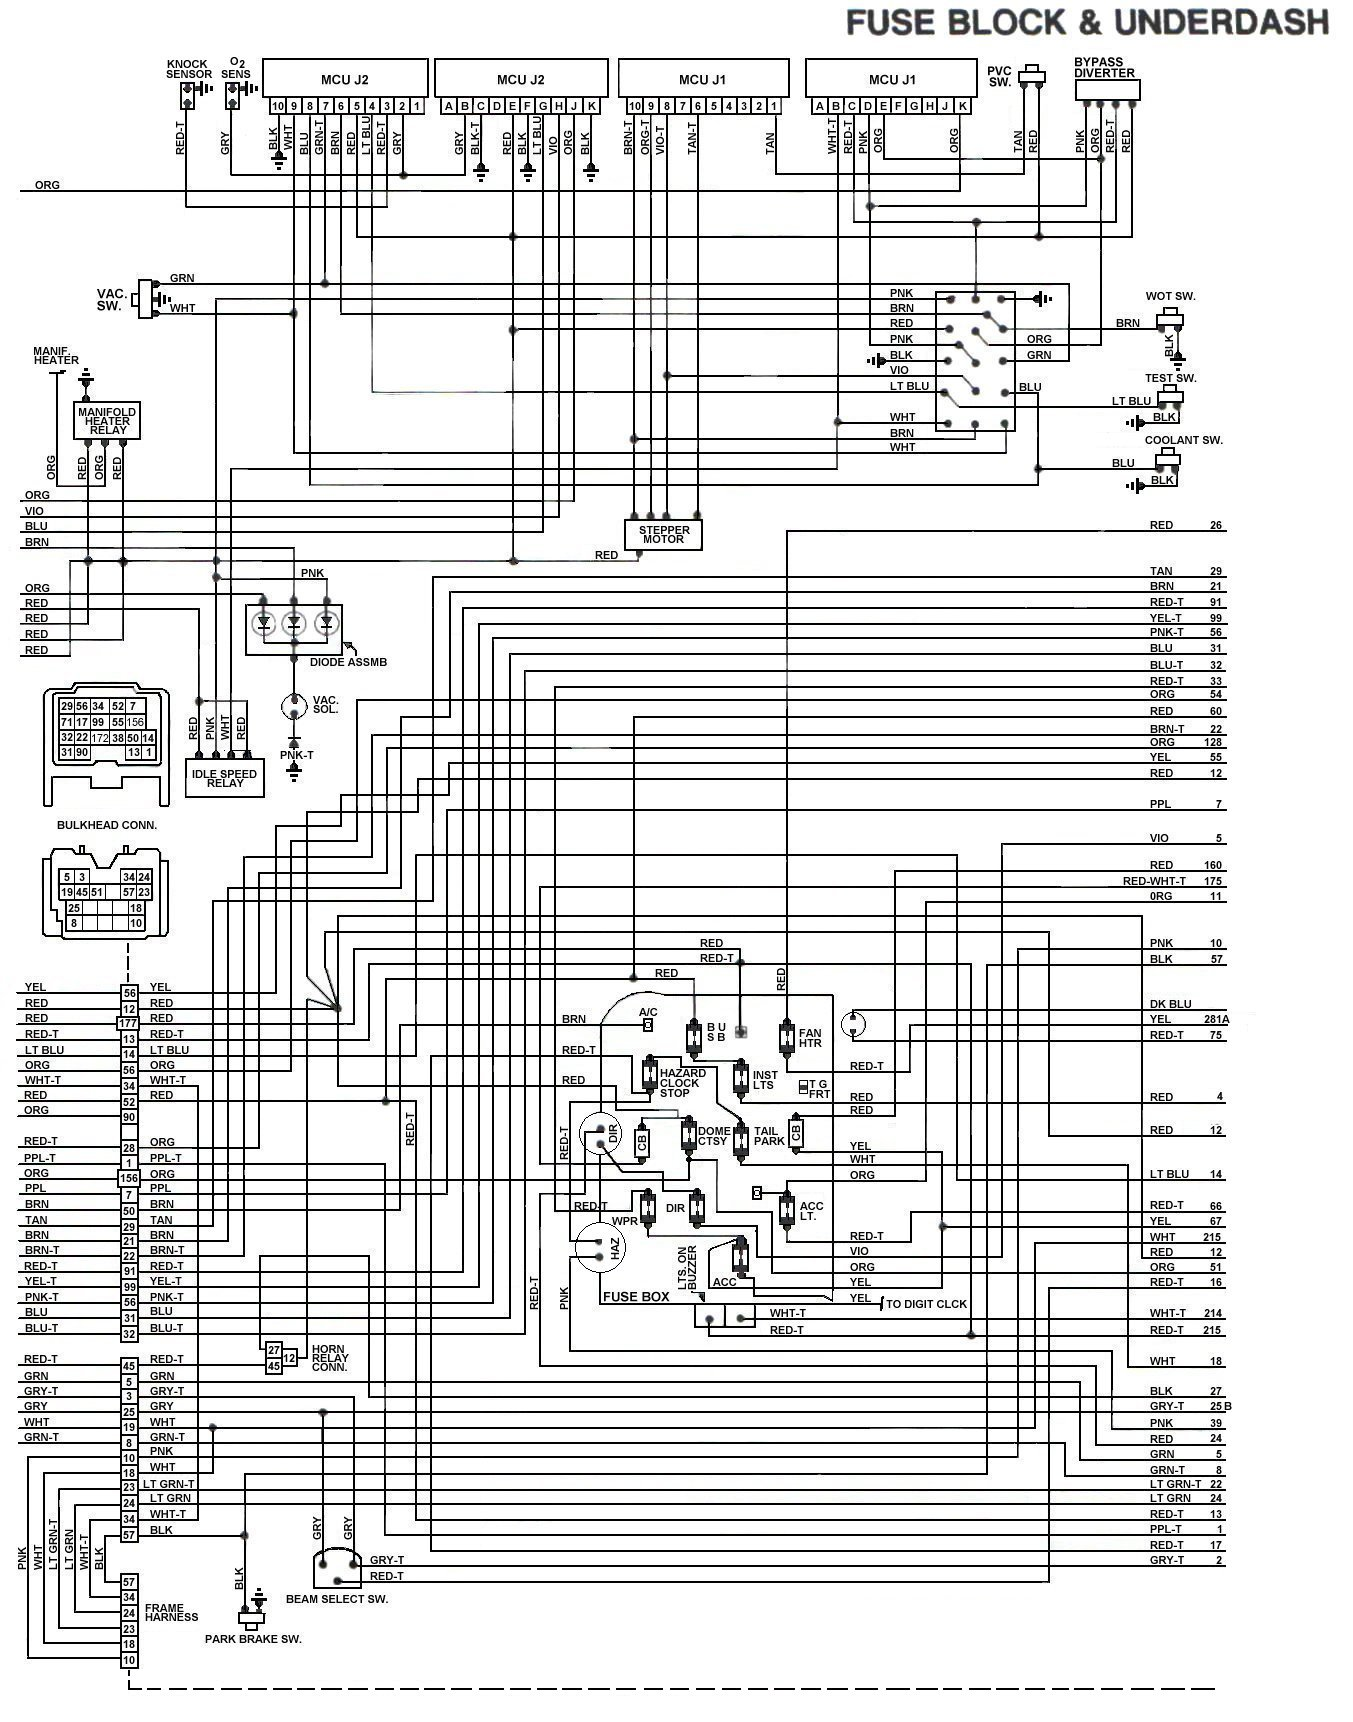 83_FSJ_WiringDiagram_FuseBlock Underdash 1981 el camino fuse box diagram wiring diagram simonand wiring fuse box at aneh.co